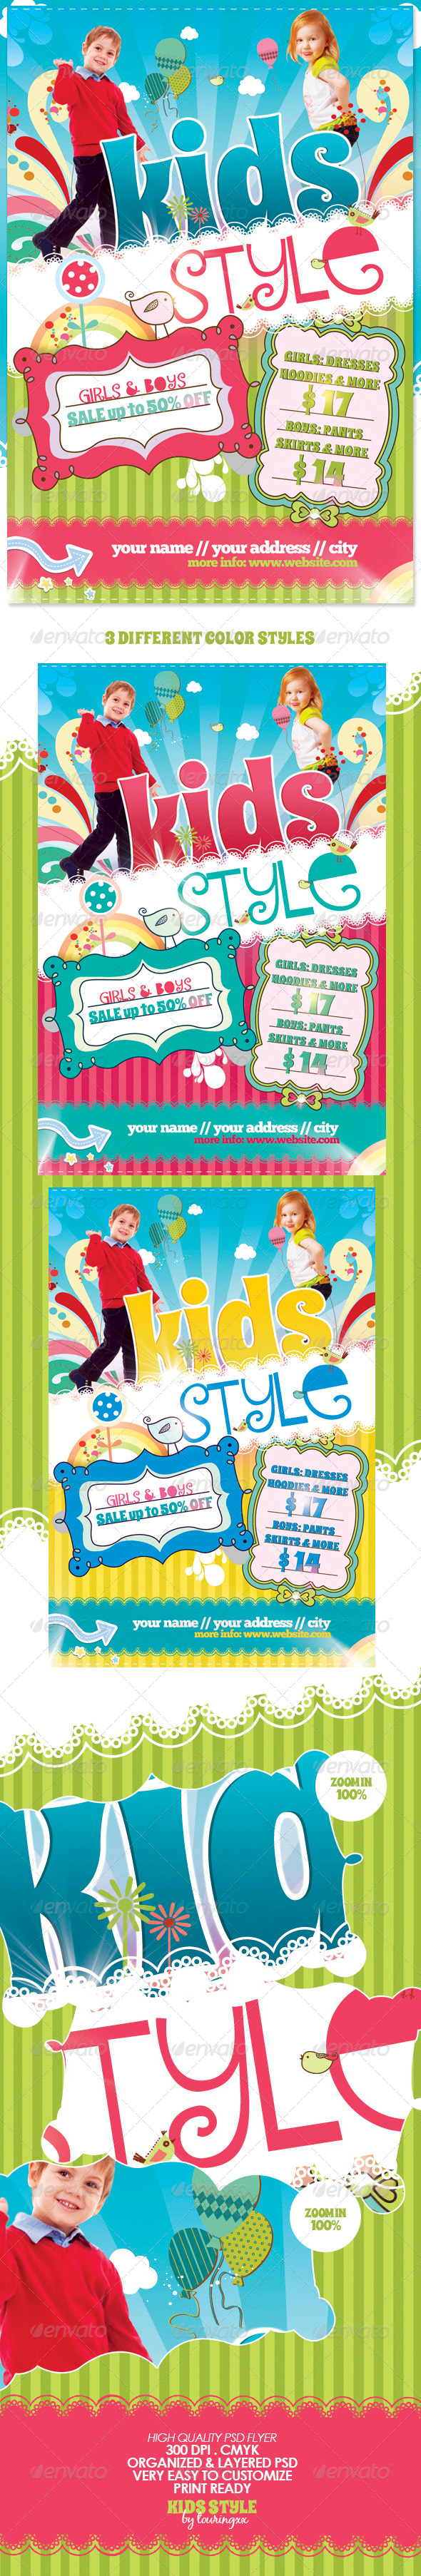 Kids Style Flyer Template - Commerce Flyers